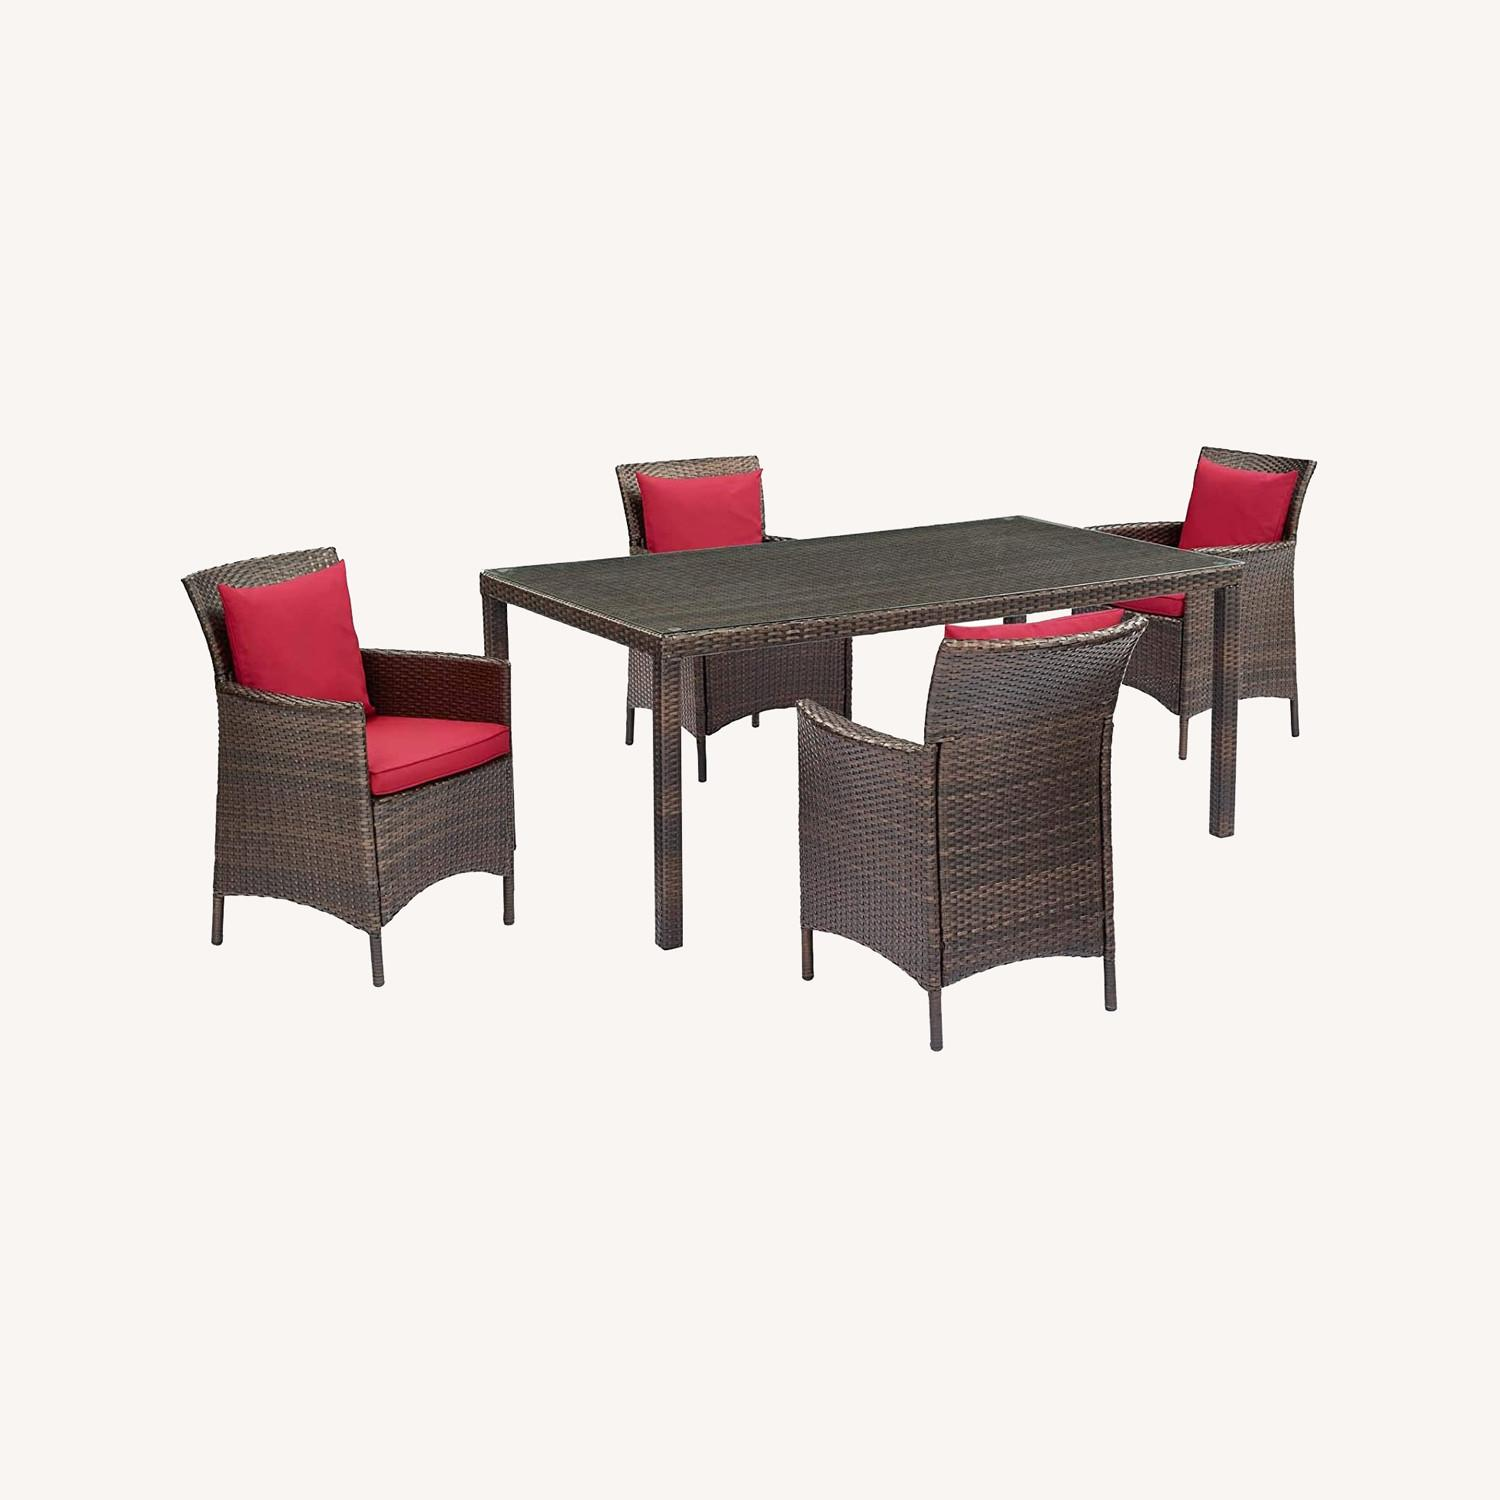 Modern 5-Piece Patio Dining Set In Brown & Red - image-7